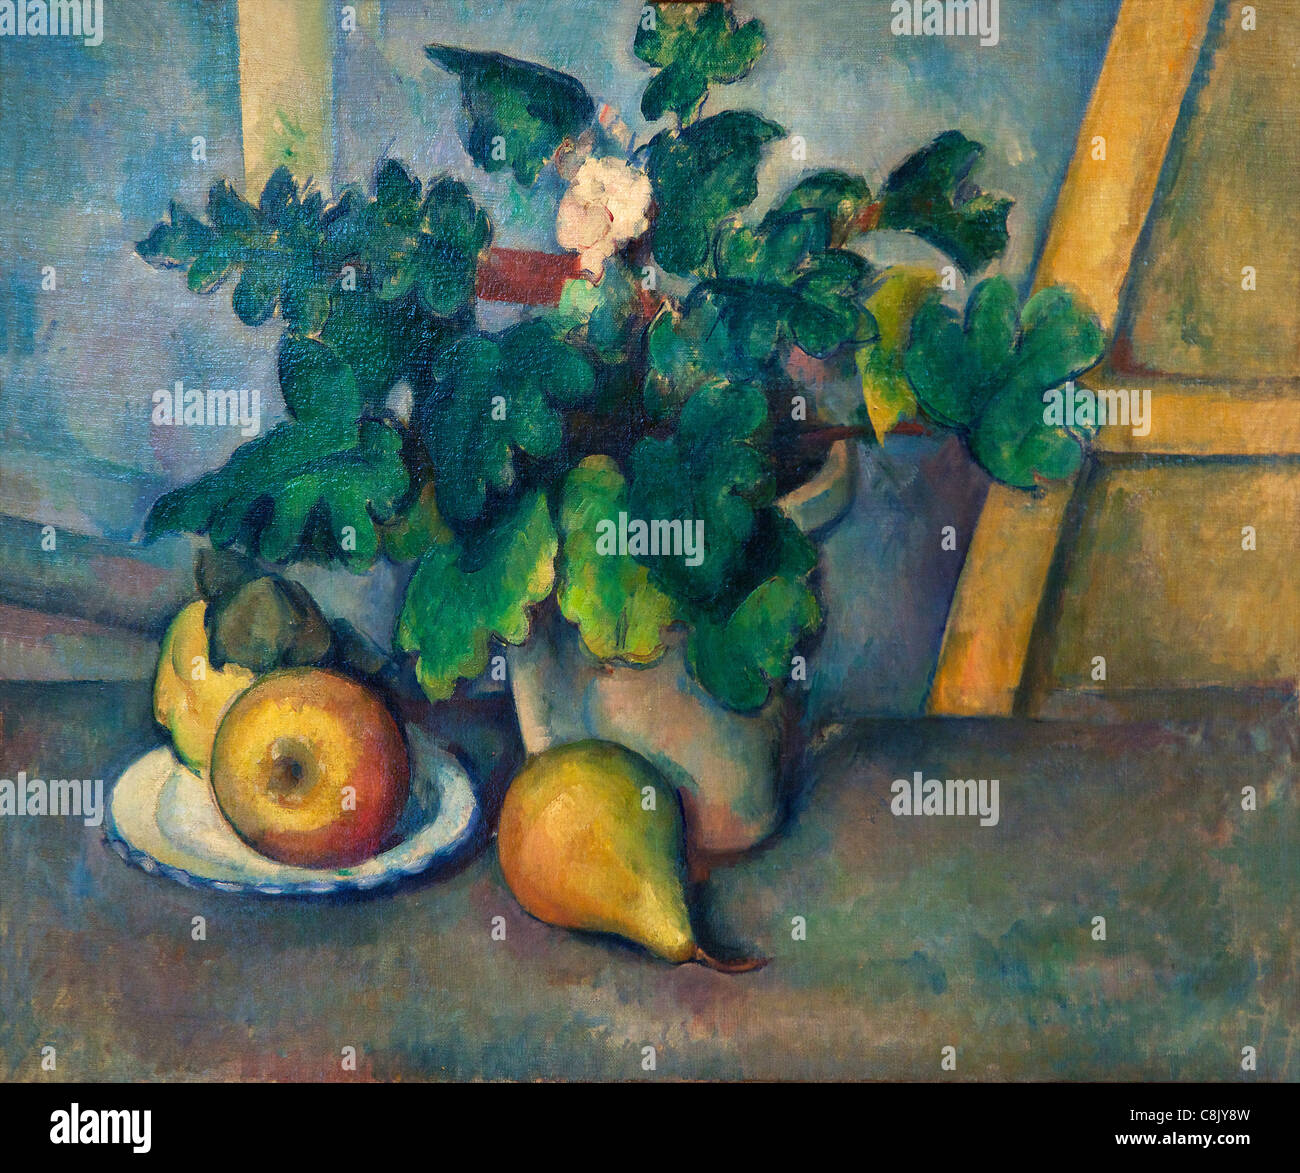 Pot of Flowers and Pears, by Paul Cezanne, 1888-90,  Courtauld Galleries, Somerset House, London, England, UK, United - Stock Image